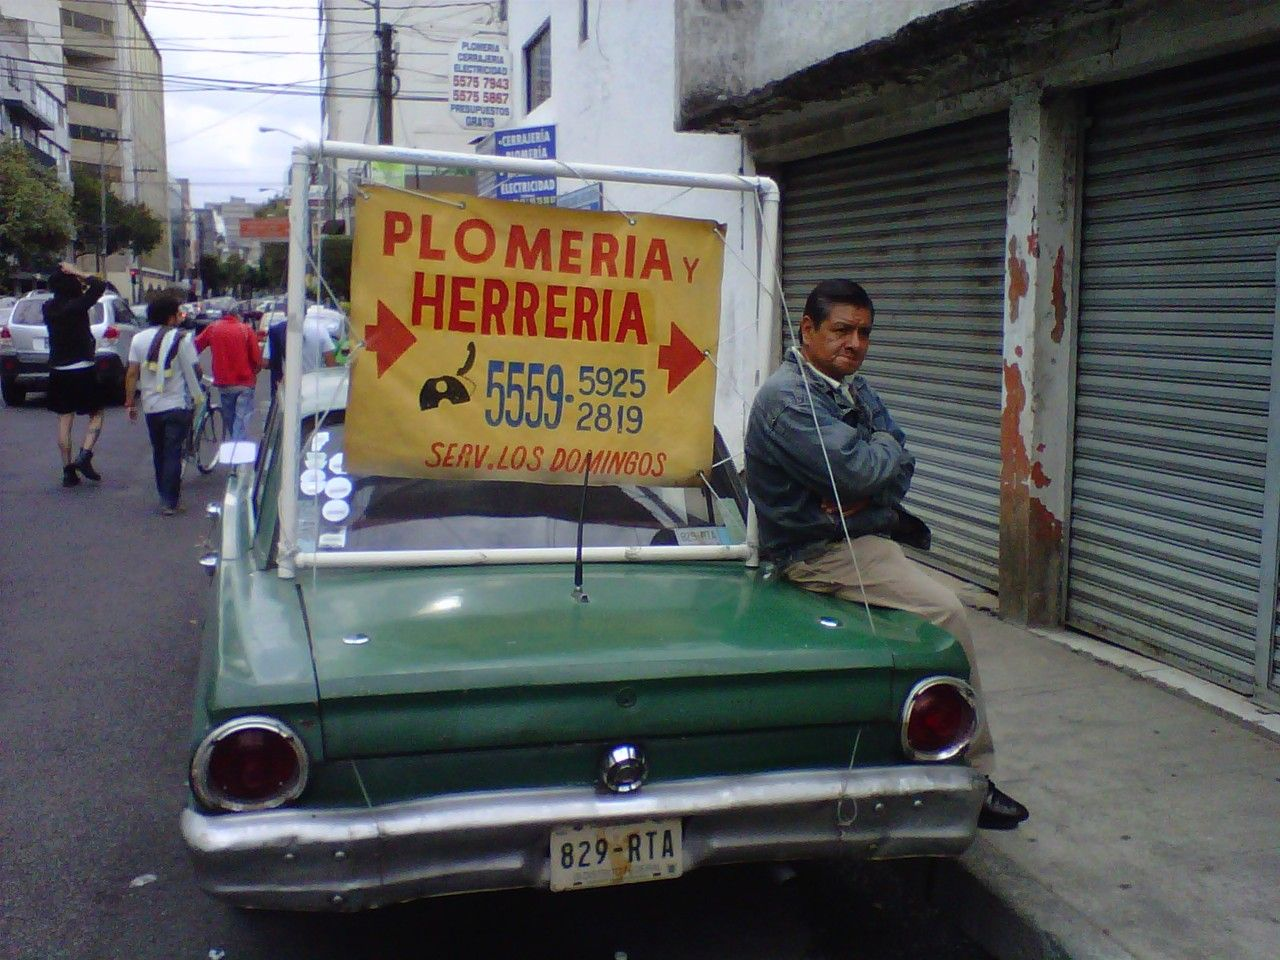 Old car used as advertising for a plomber in Colonia del Valle ...